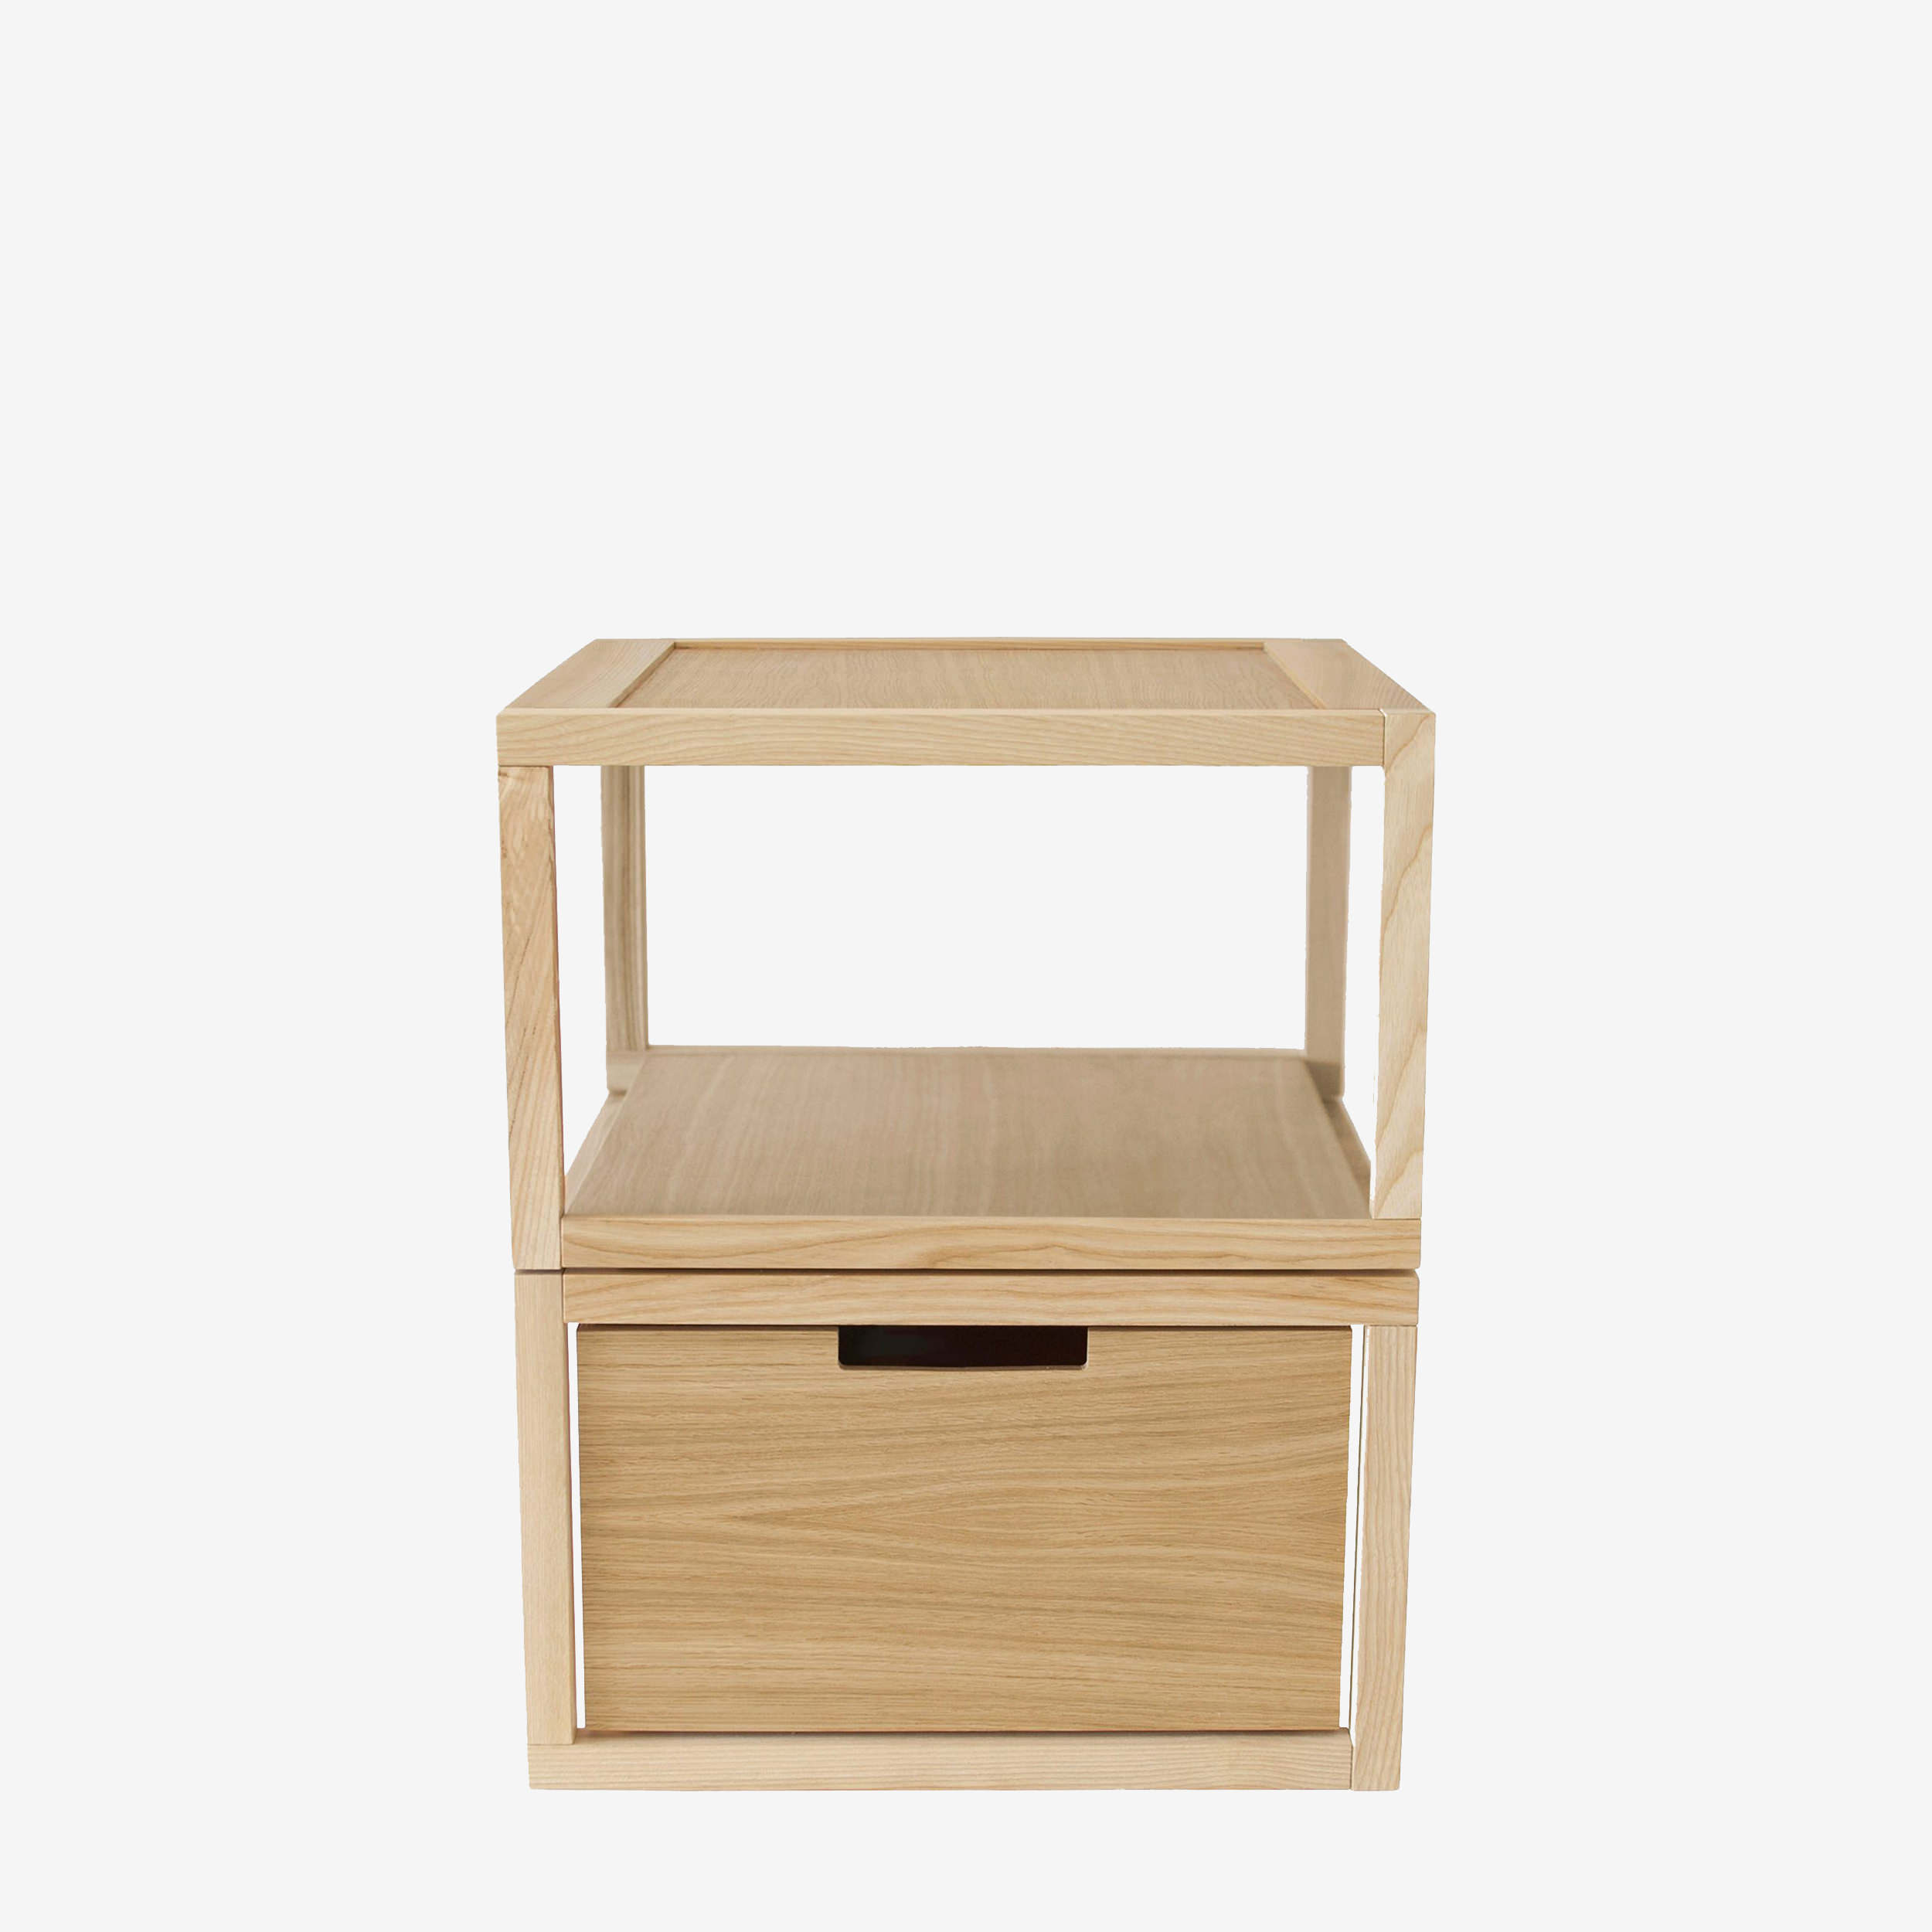 playwell storage boxes byalex. Black Bedroom Furniture Sets. Home Design Ideas